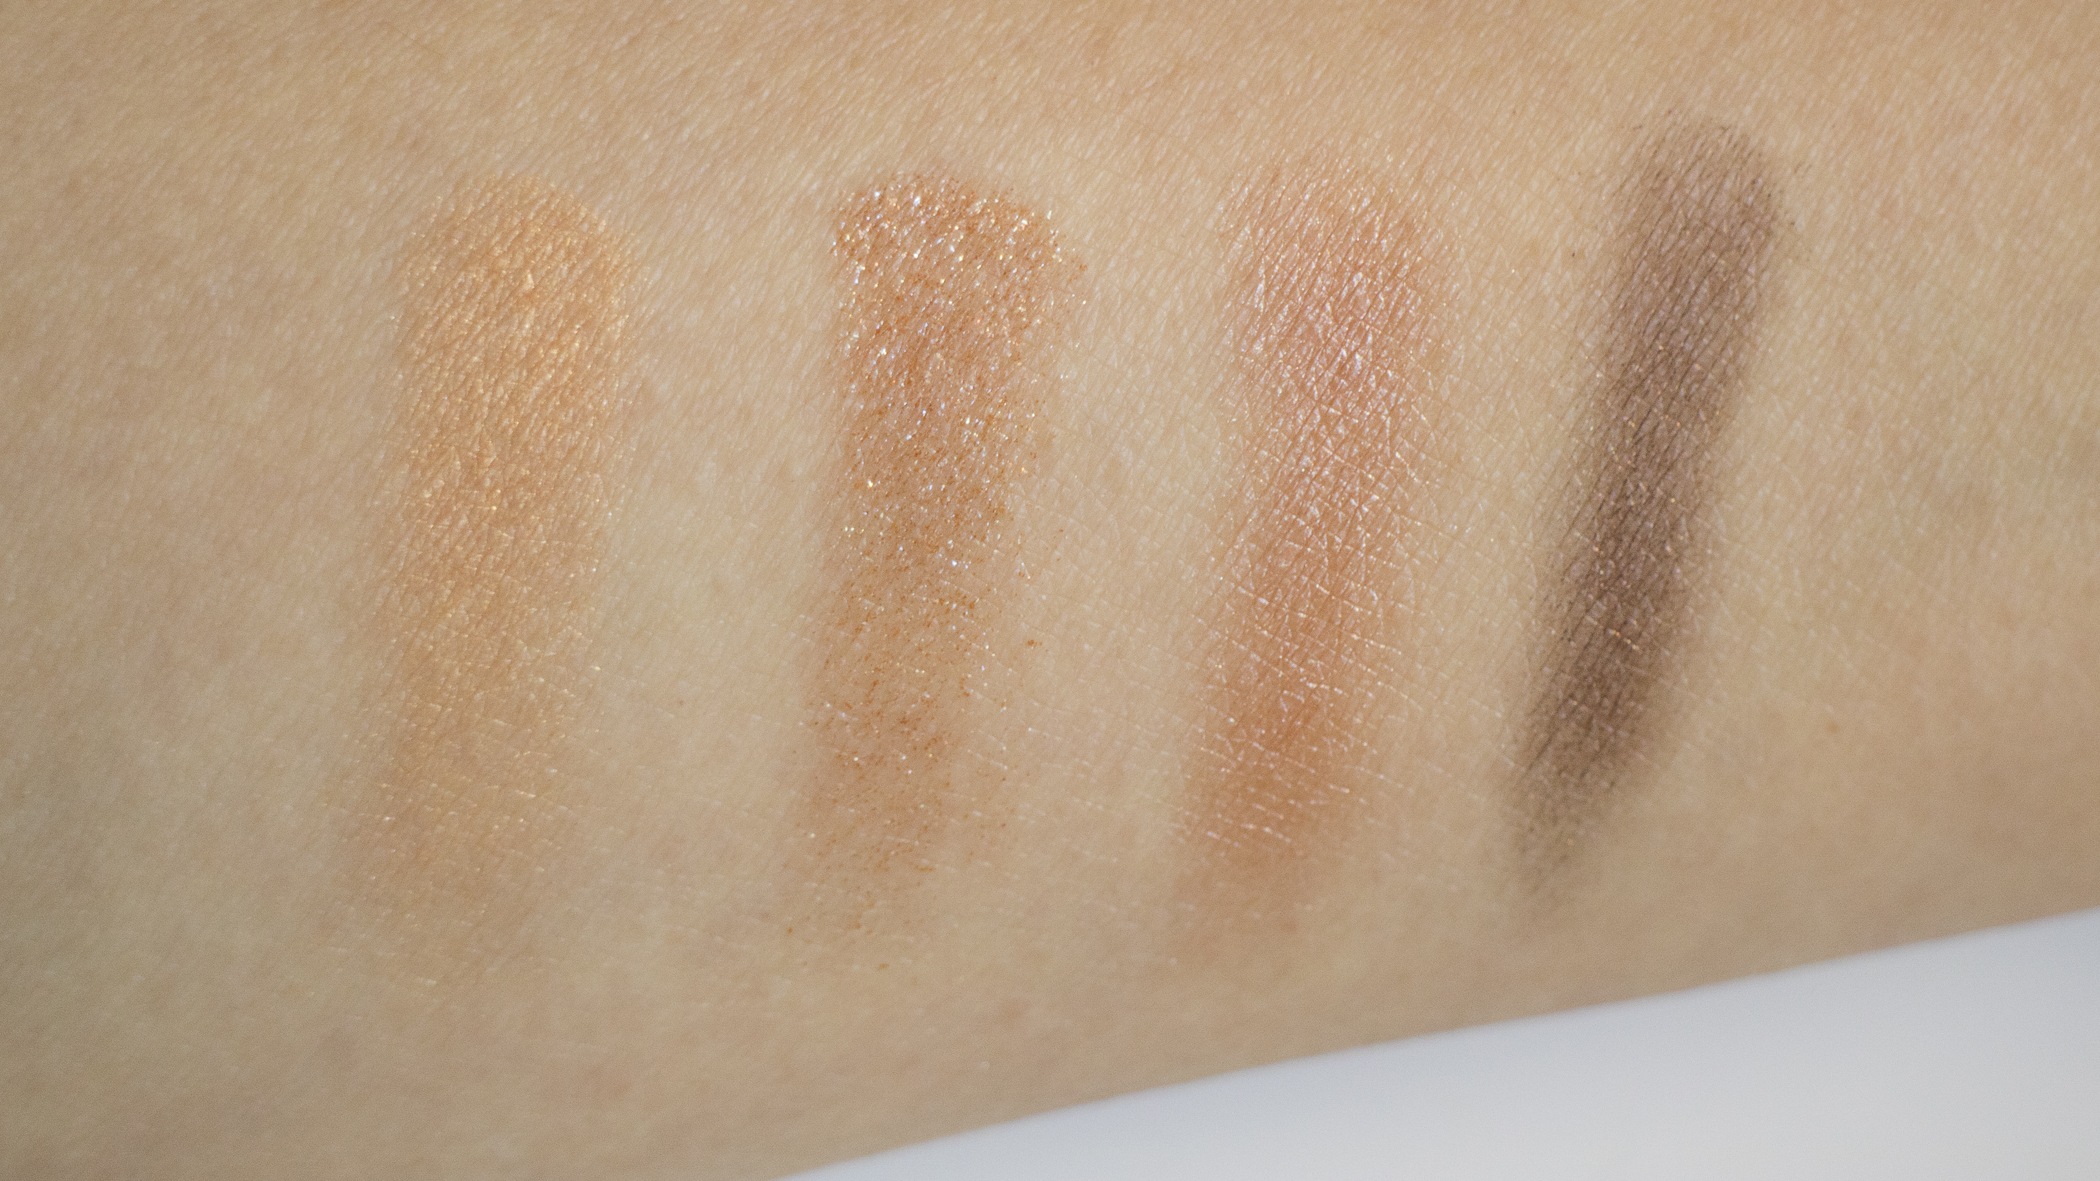 Finger swatches, from L to R: 1, 2, 3, 4